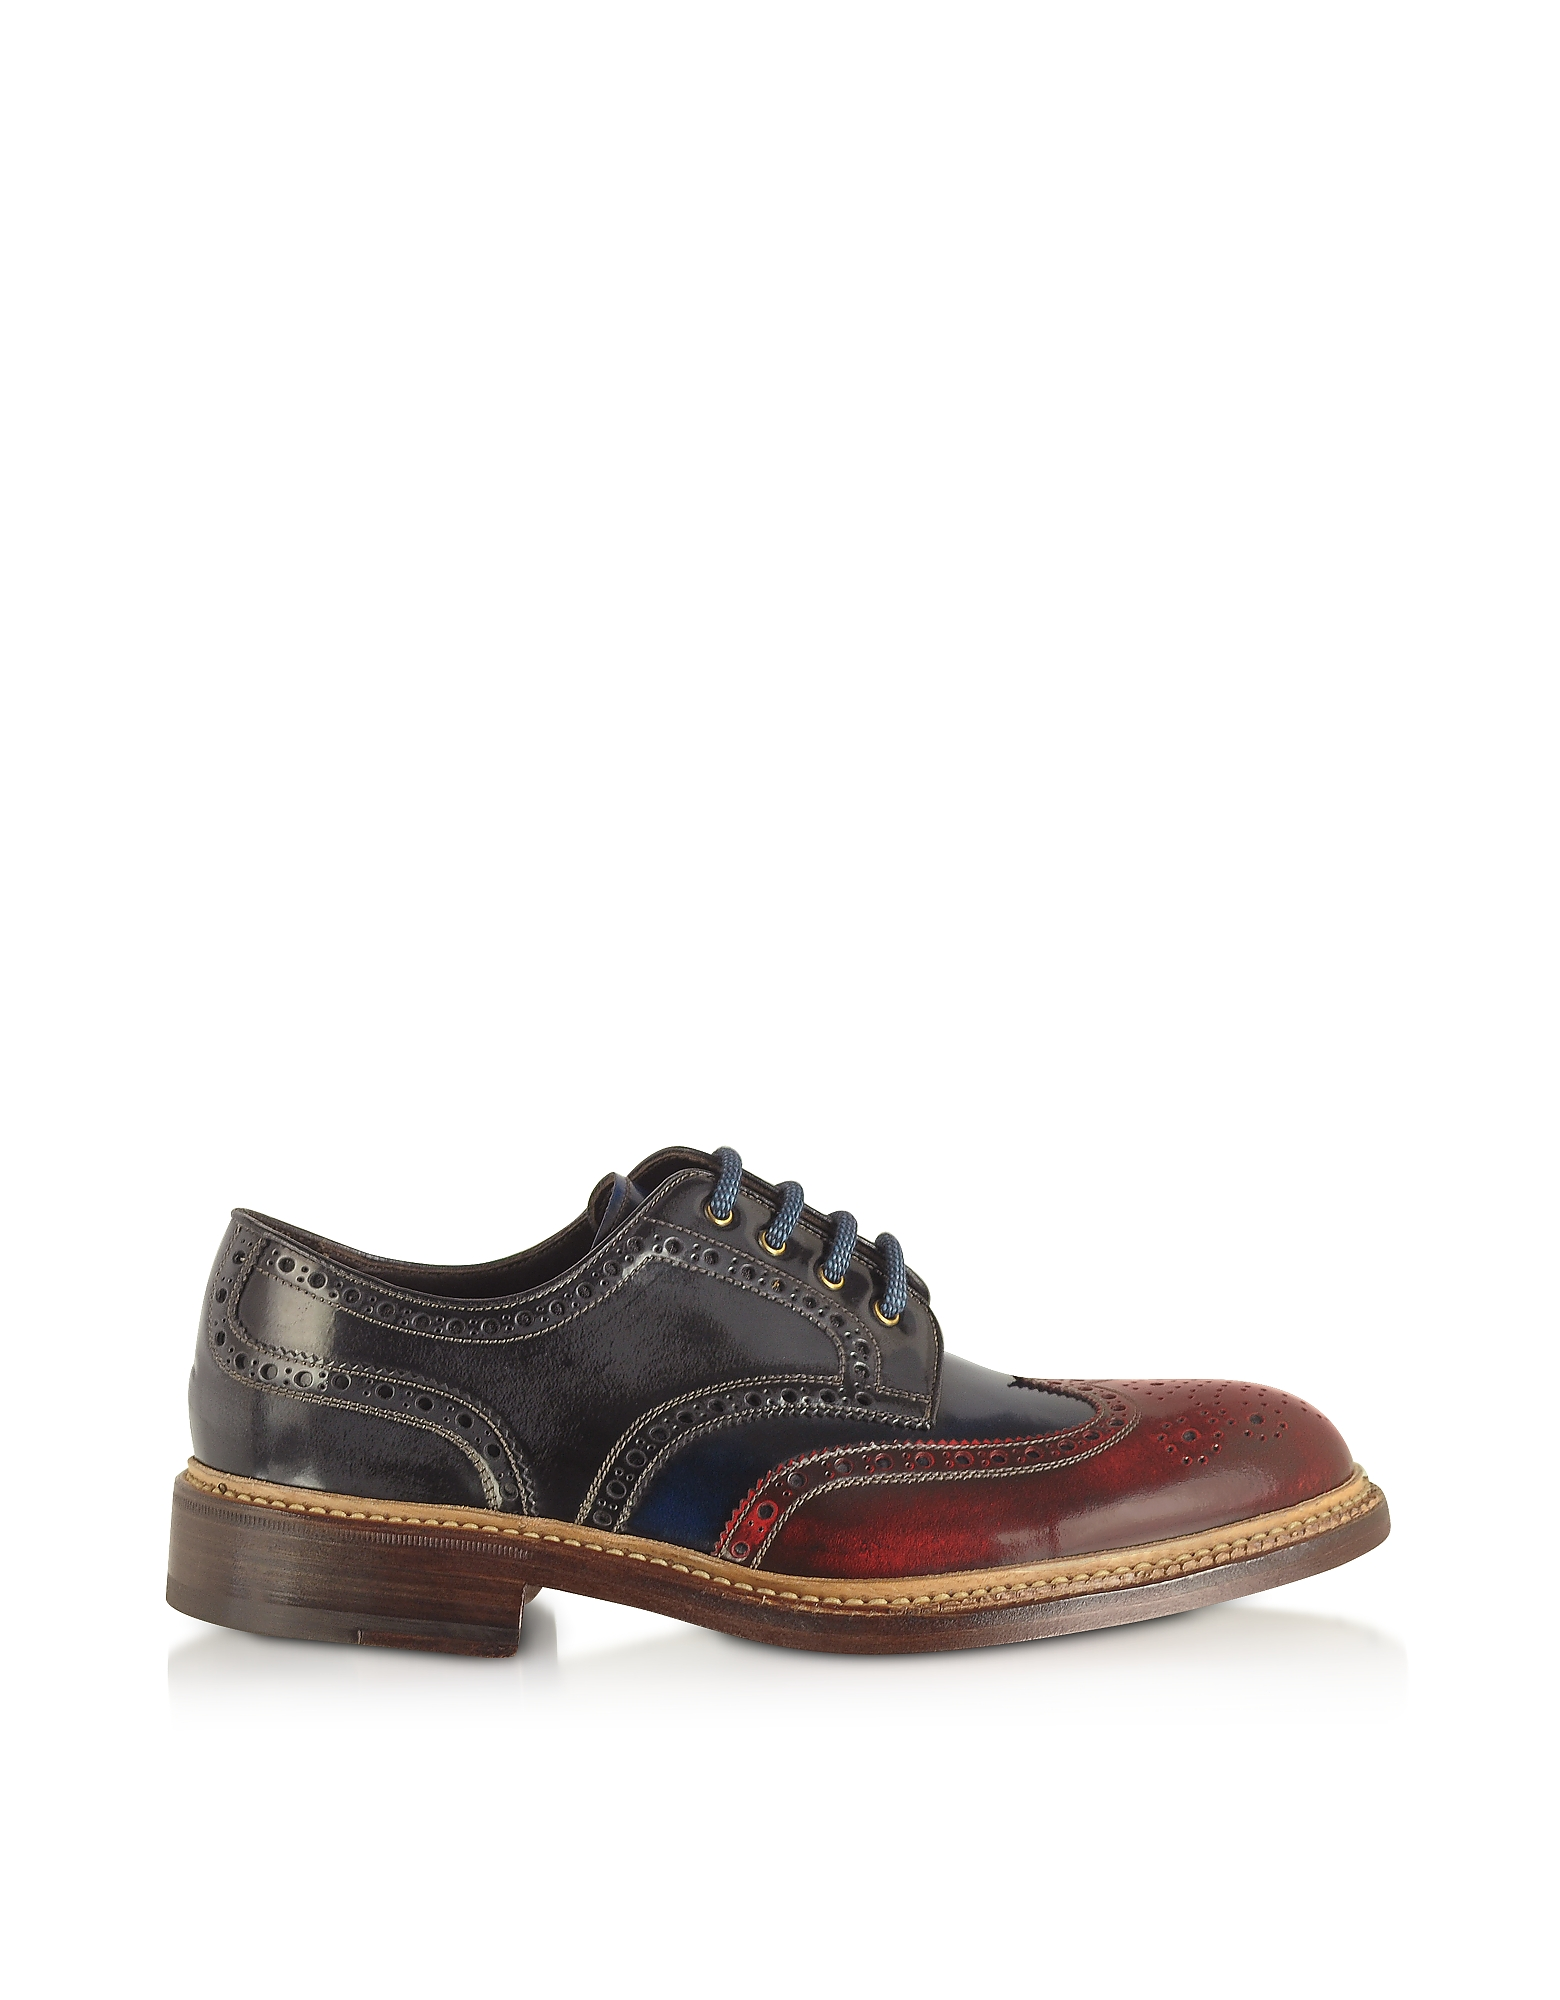 Forzieri Shoes, Multicolor Wingtip Derby Shoes